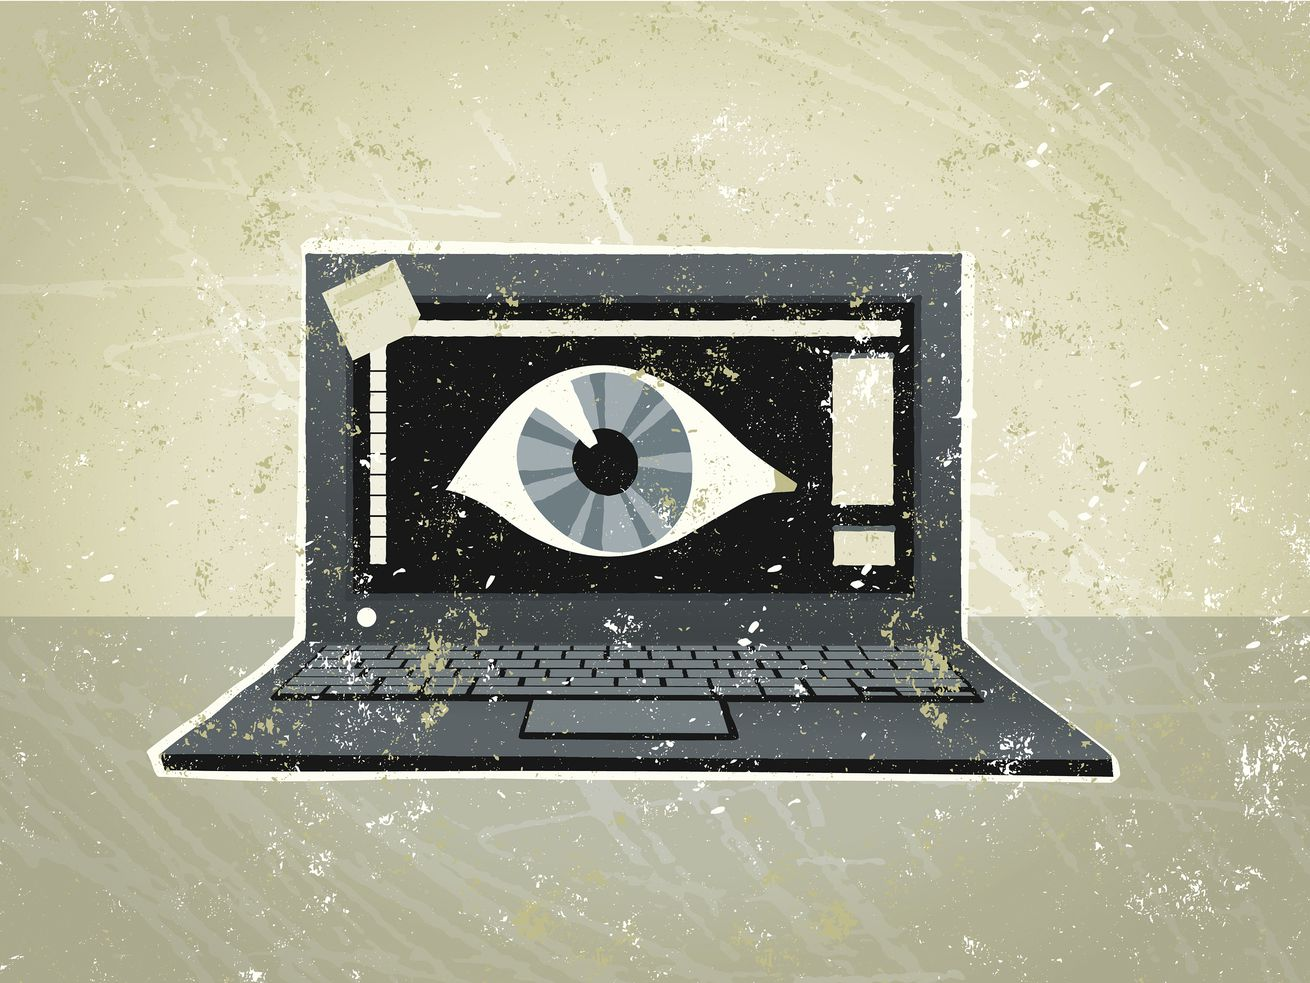 A drawing of a laptop computer with an eyeball on its screen.